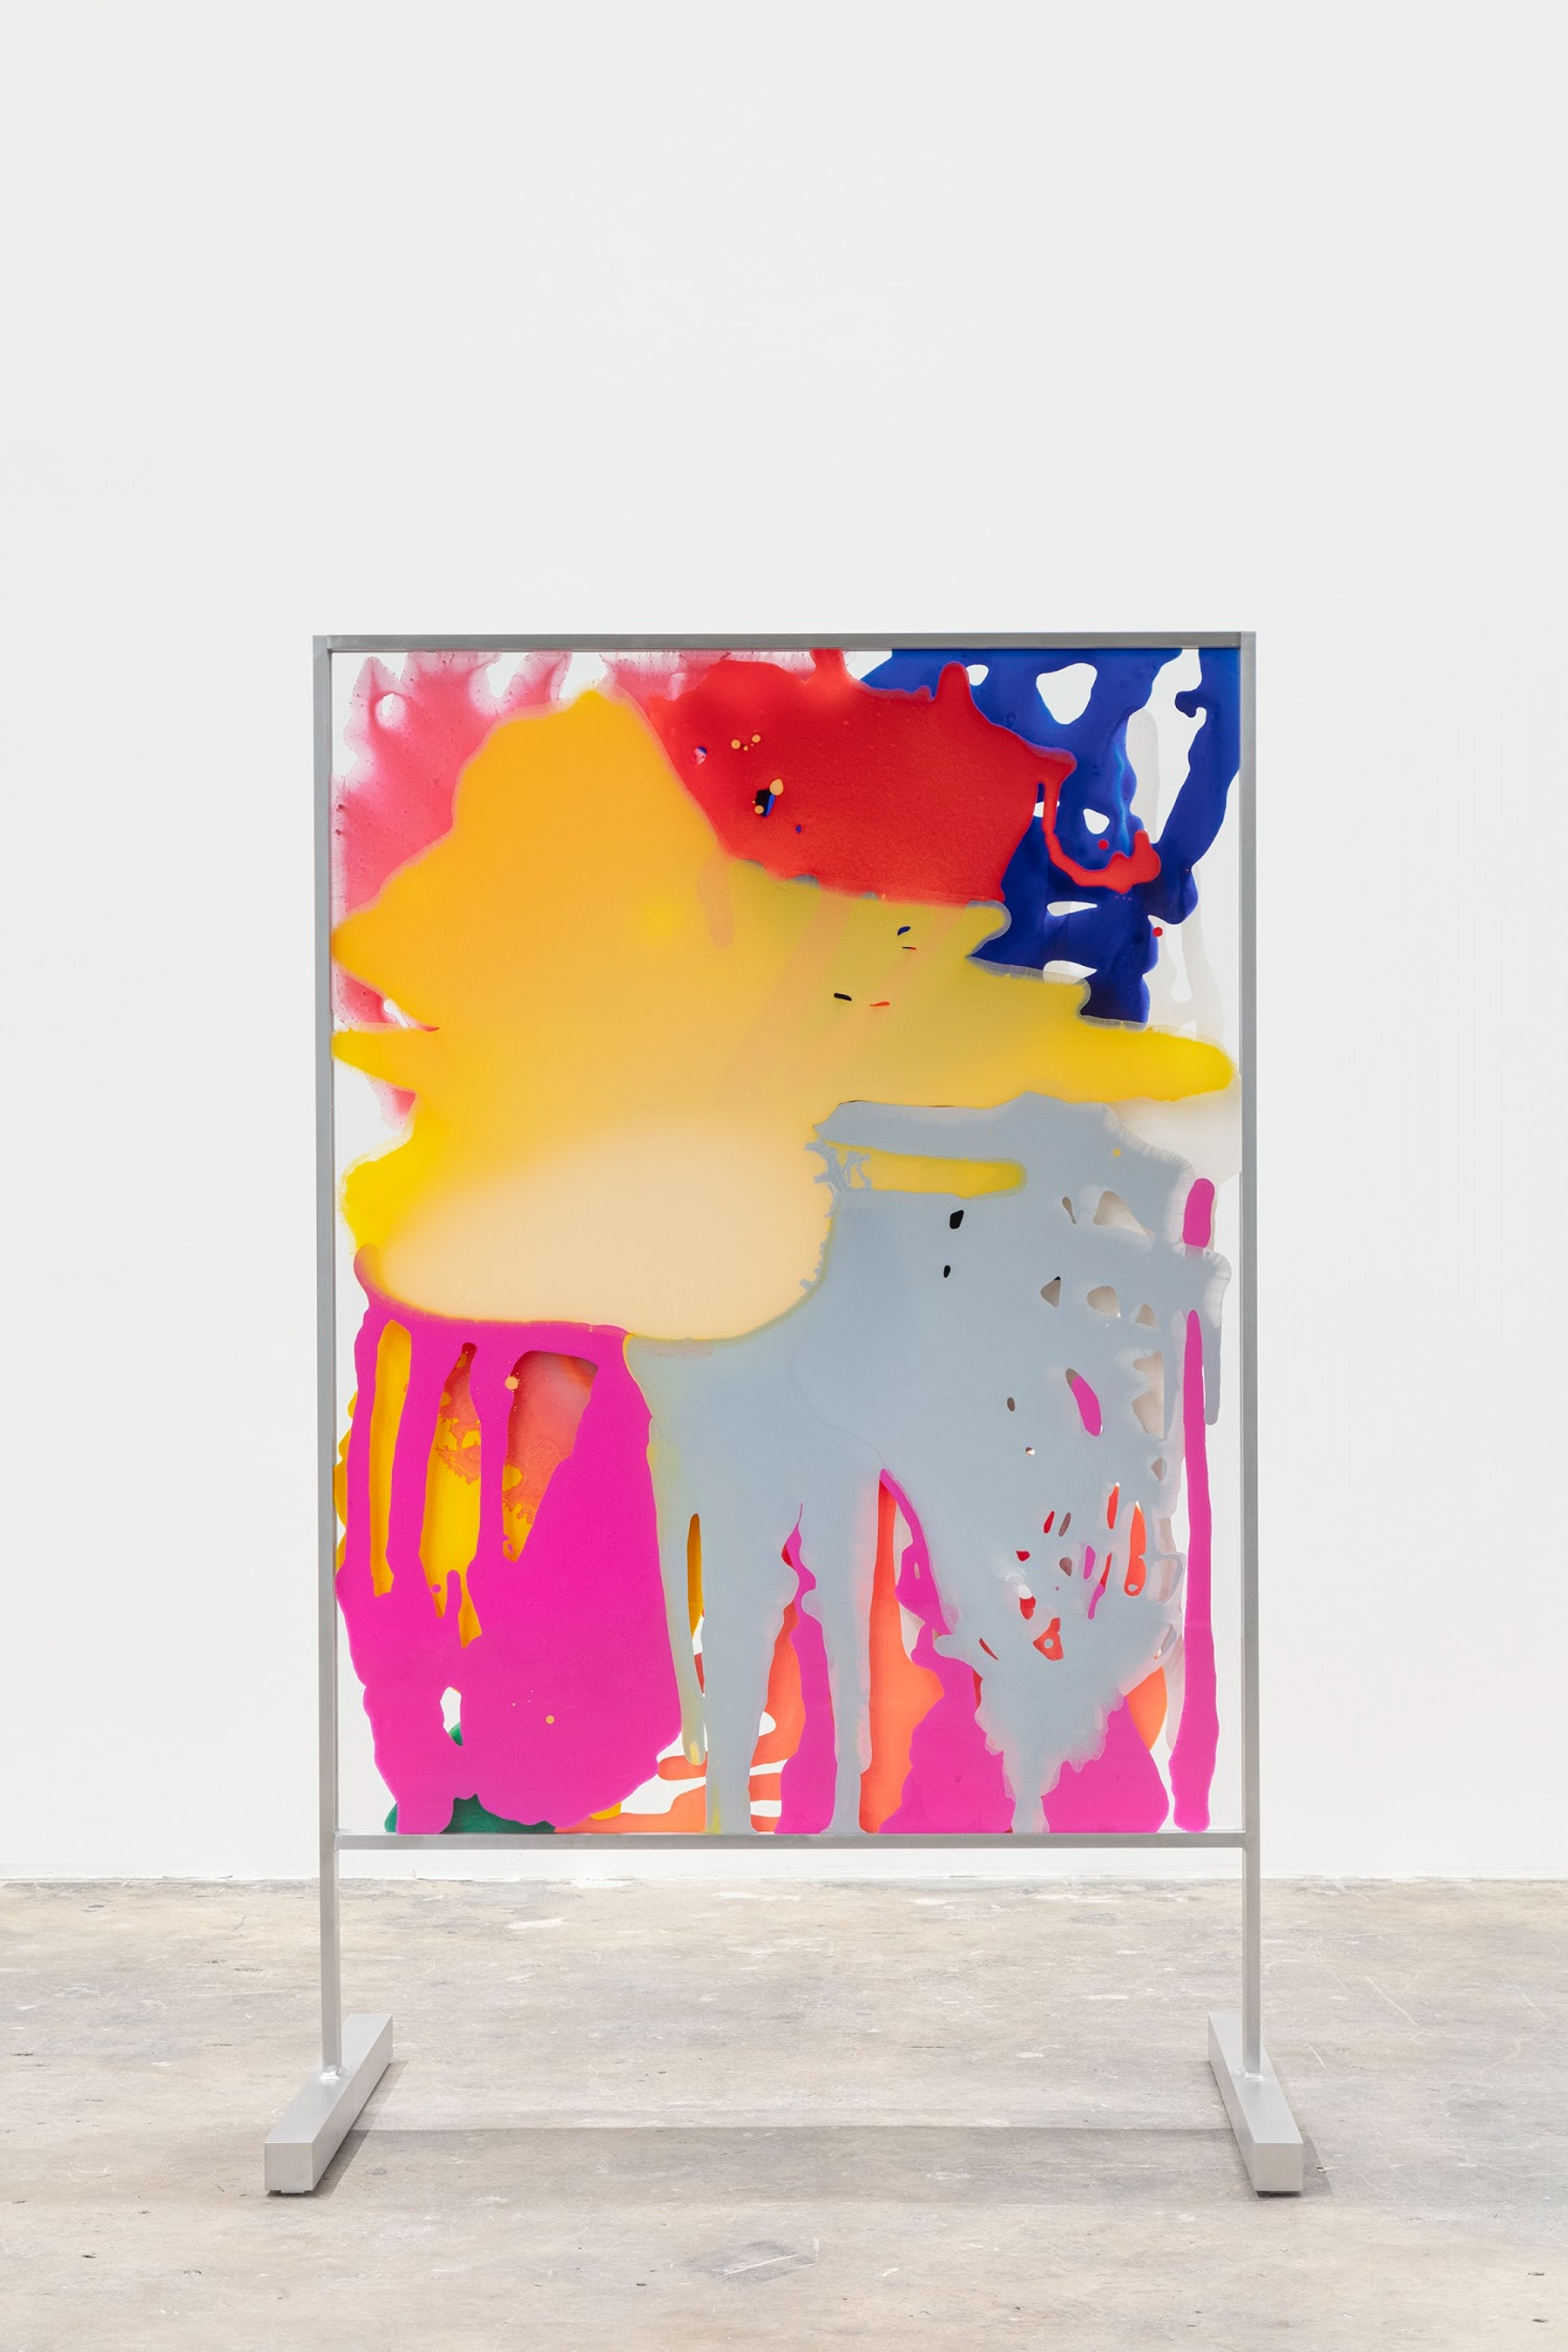 """Yunhee Min """"Vitreous Opacities (Double Floor #1),"""" 2021 Enamel, acrylic on tempered starphire glass with custom aluminum frame 65 ¹⁄₄"""" x 41"""" x 28 ¹⁄₂"""" [HxWxD] (165.74 x 104.14 x 72.39 cm) Inventory #MIN346 Courtesy of the artist and Vielmetter Los Angeles Photo credit: Evan Bedford"""